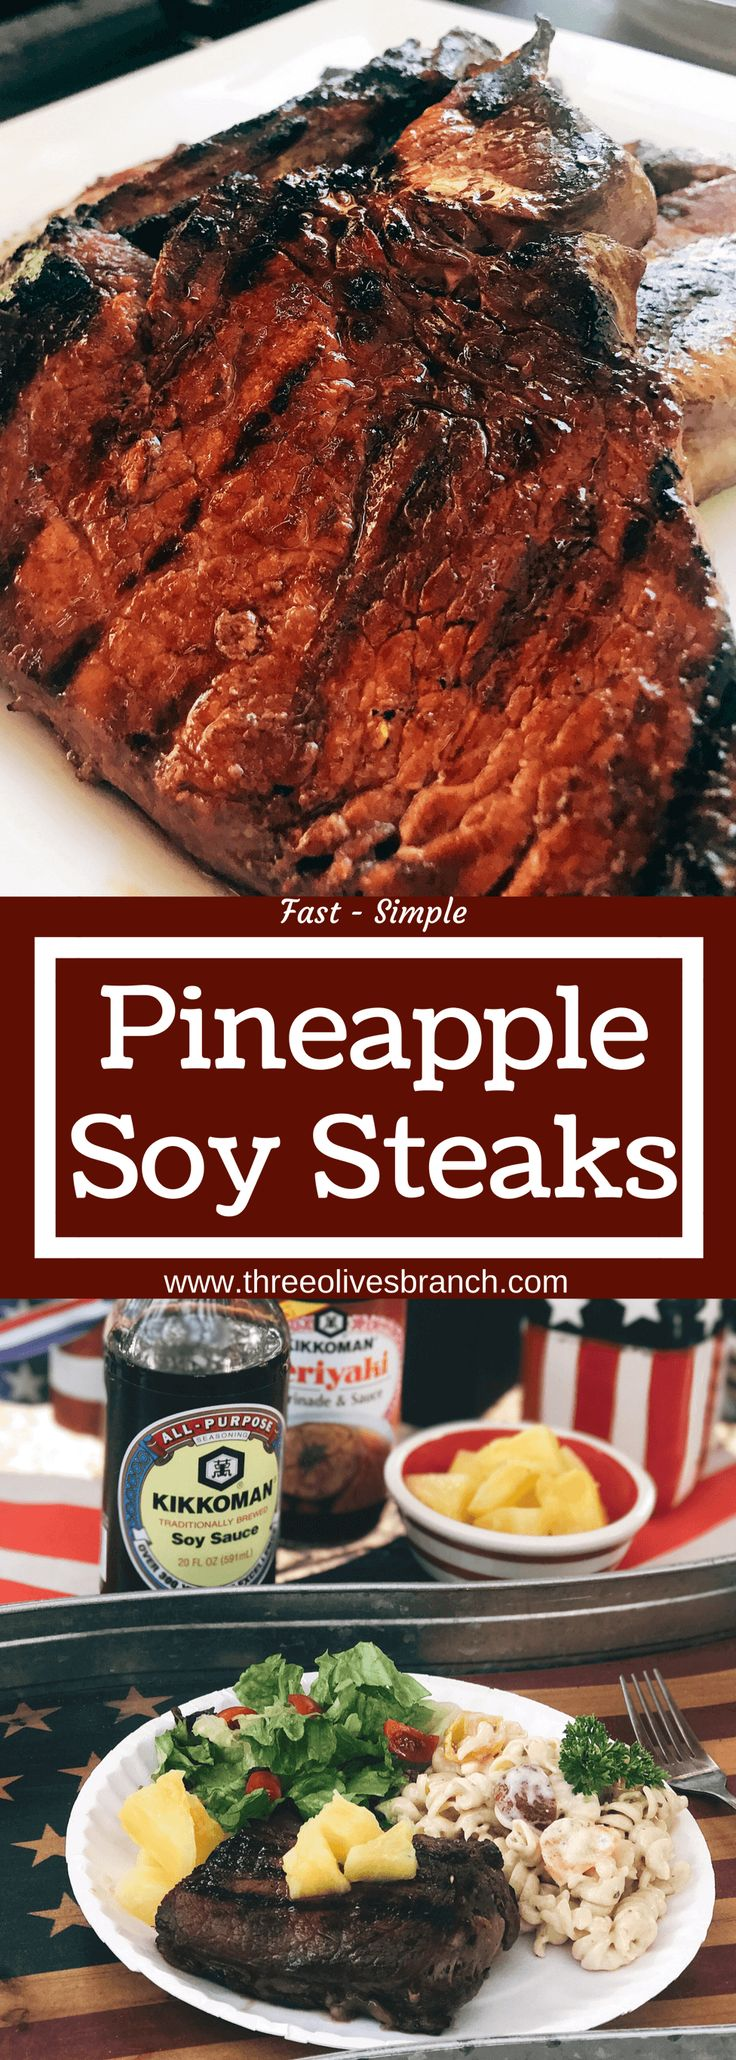 A quick and simple marinade that takes just a few minutes to put together. Perfect to leave overnight. The pineapple juice acid tenderizes the meat in a flavorful steak marinade. Great for any summer grilling, cook out, or BBQ event like 4th of July. Soy sauce, pineapple juice, ginger, and lime. Fast and easy dinner idea. Pineapple Soy Steaks | Three Olives Branch | www.threeolivesbranch.com @KikkomanUSA @Walmart #KickinItWithKikkoman #ad